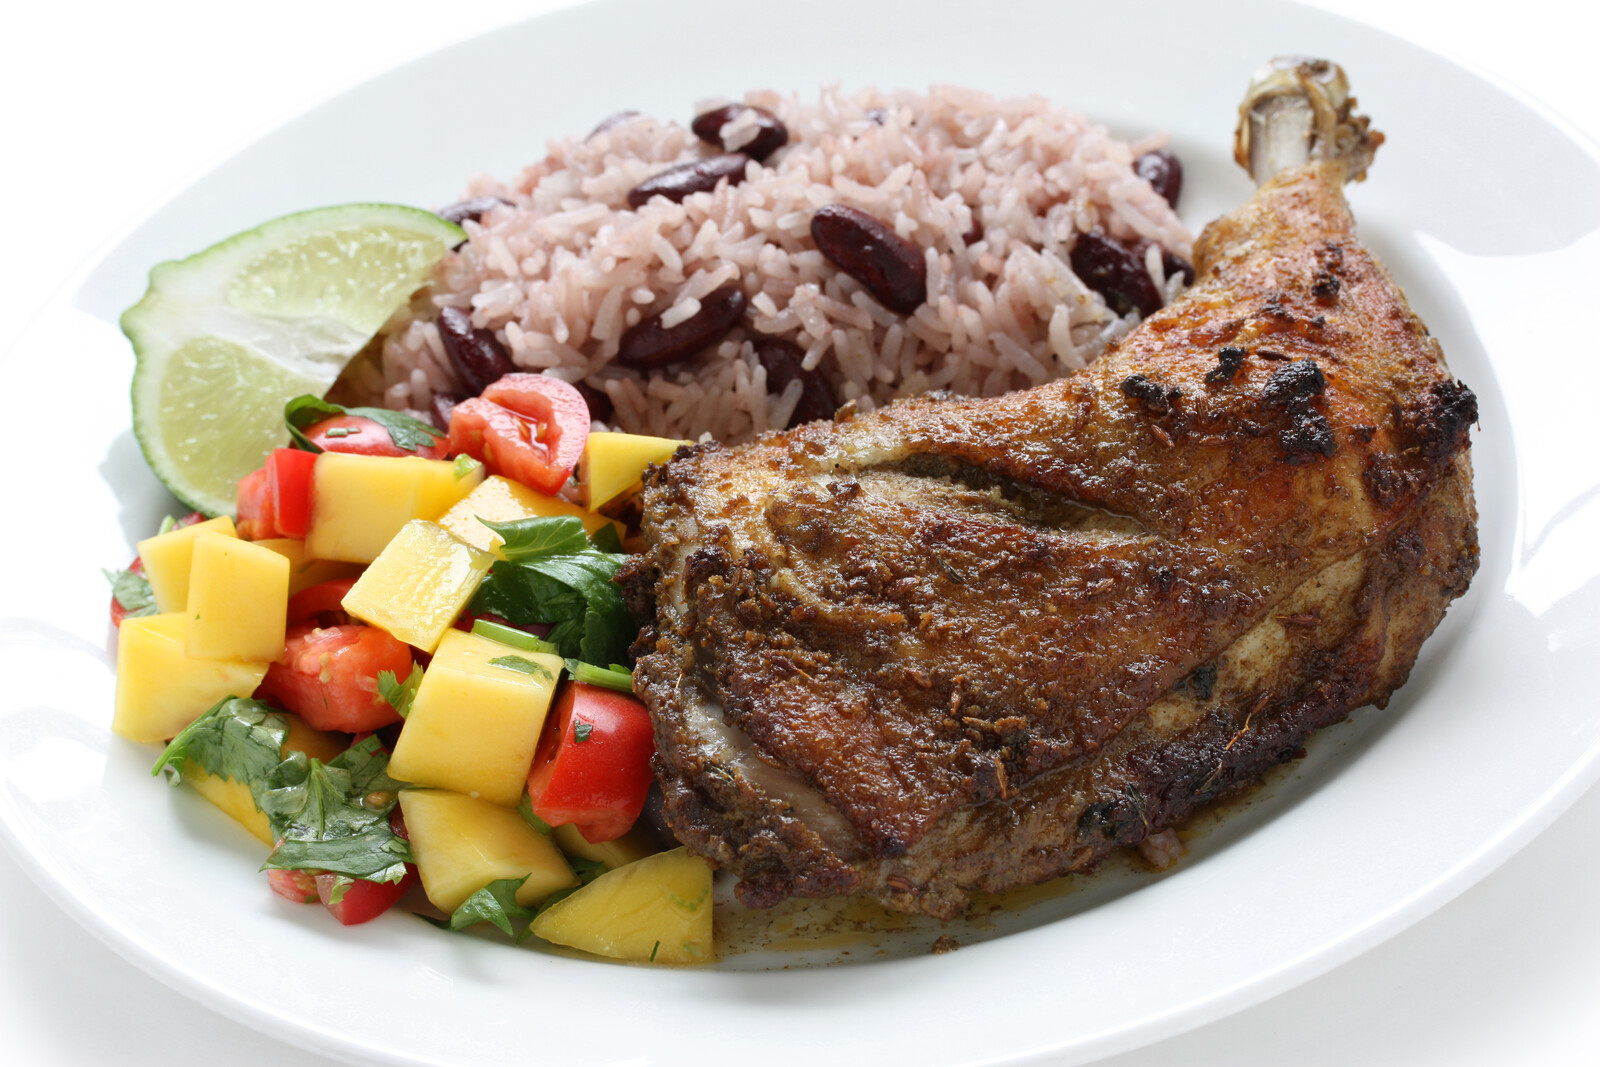 Jamaican Jerk chicken with mango salsa and red beans and rice on a white plate garnished with a lime